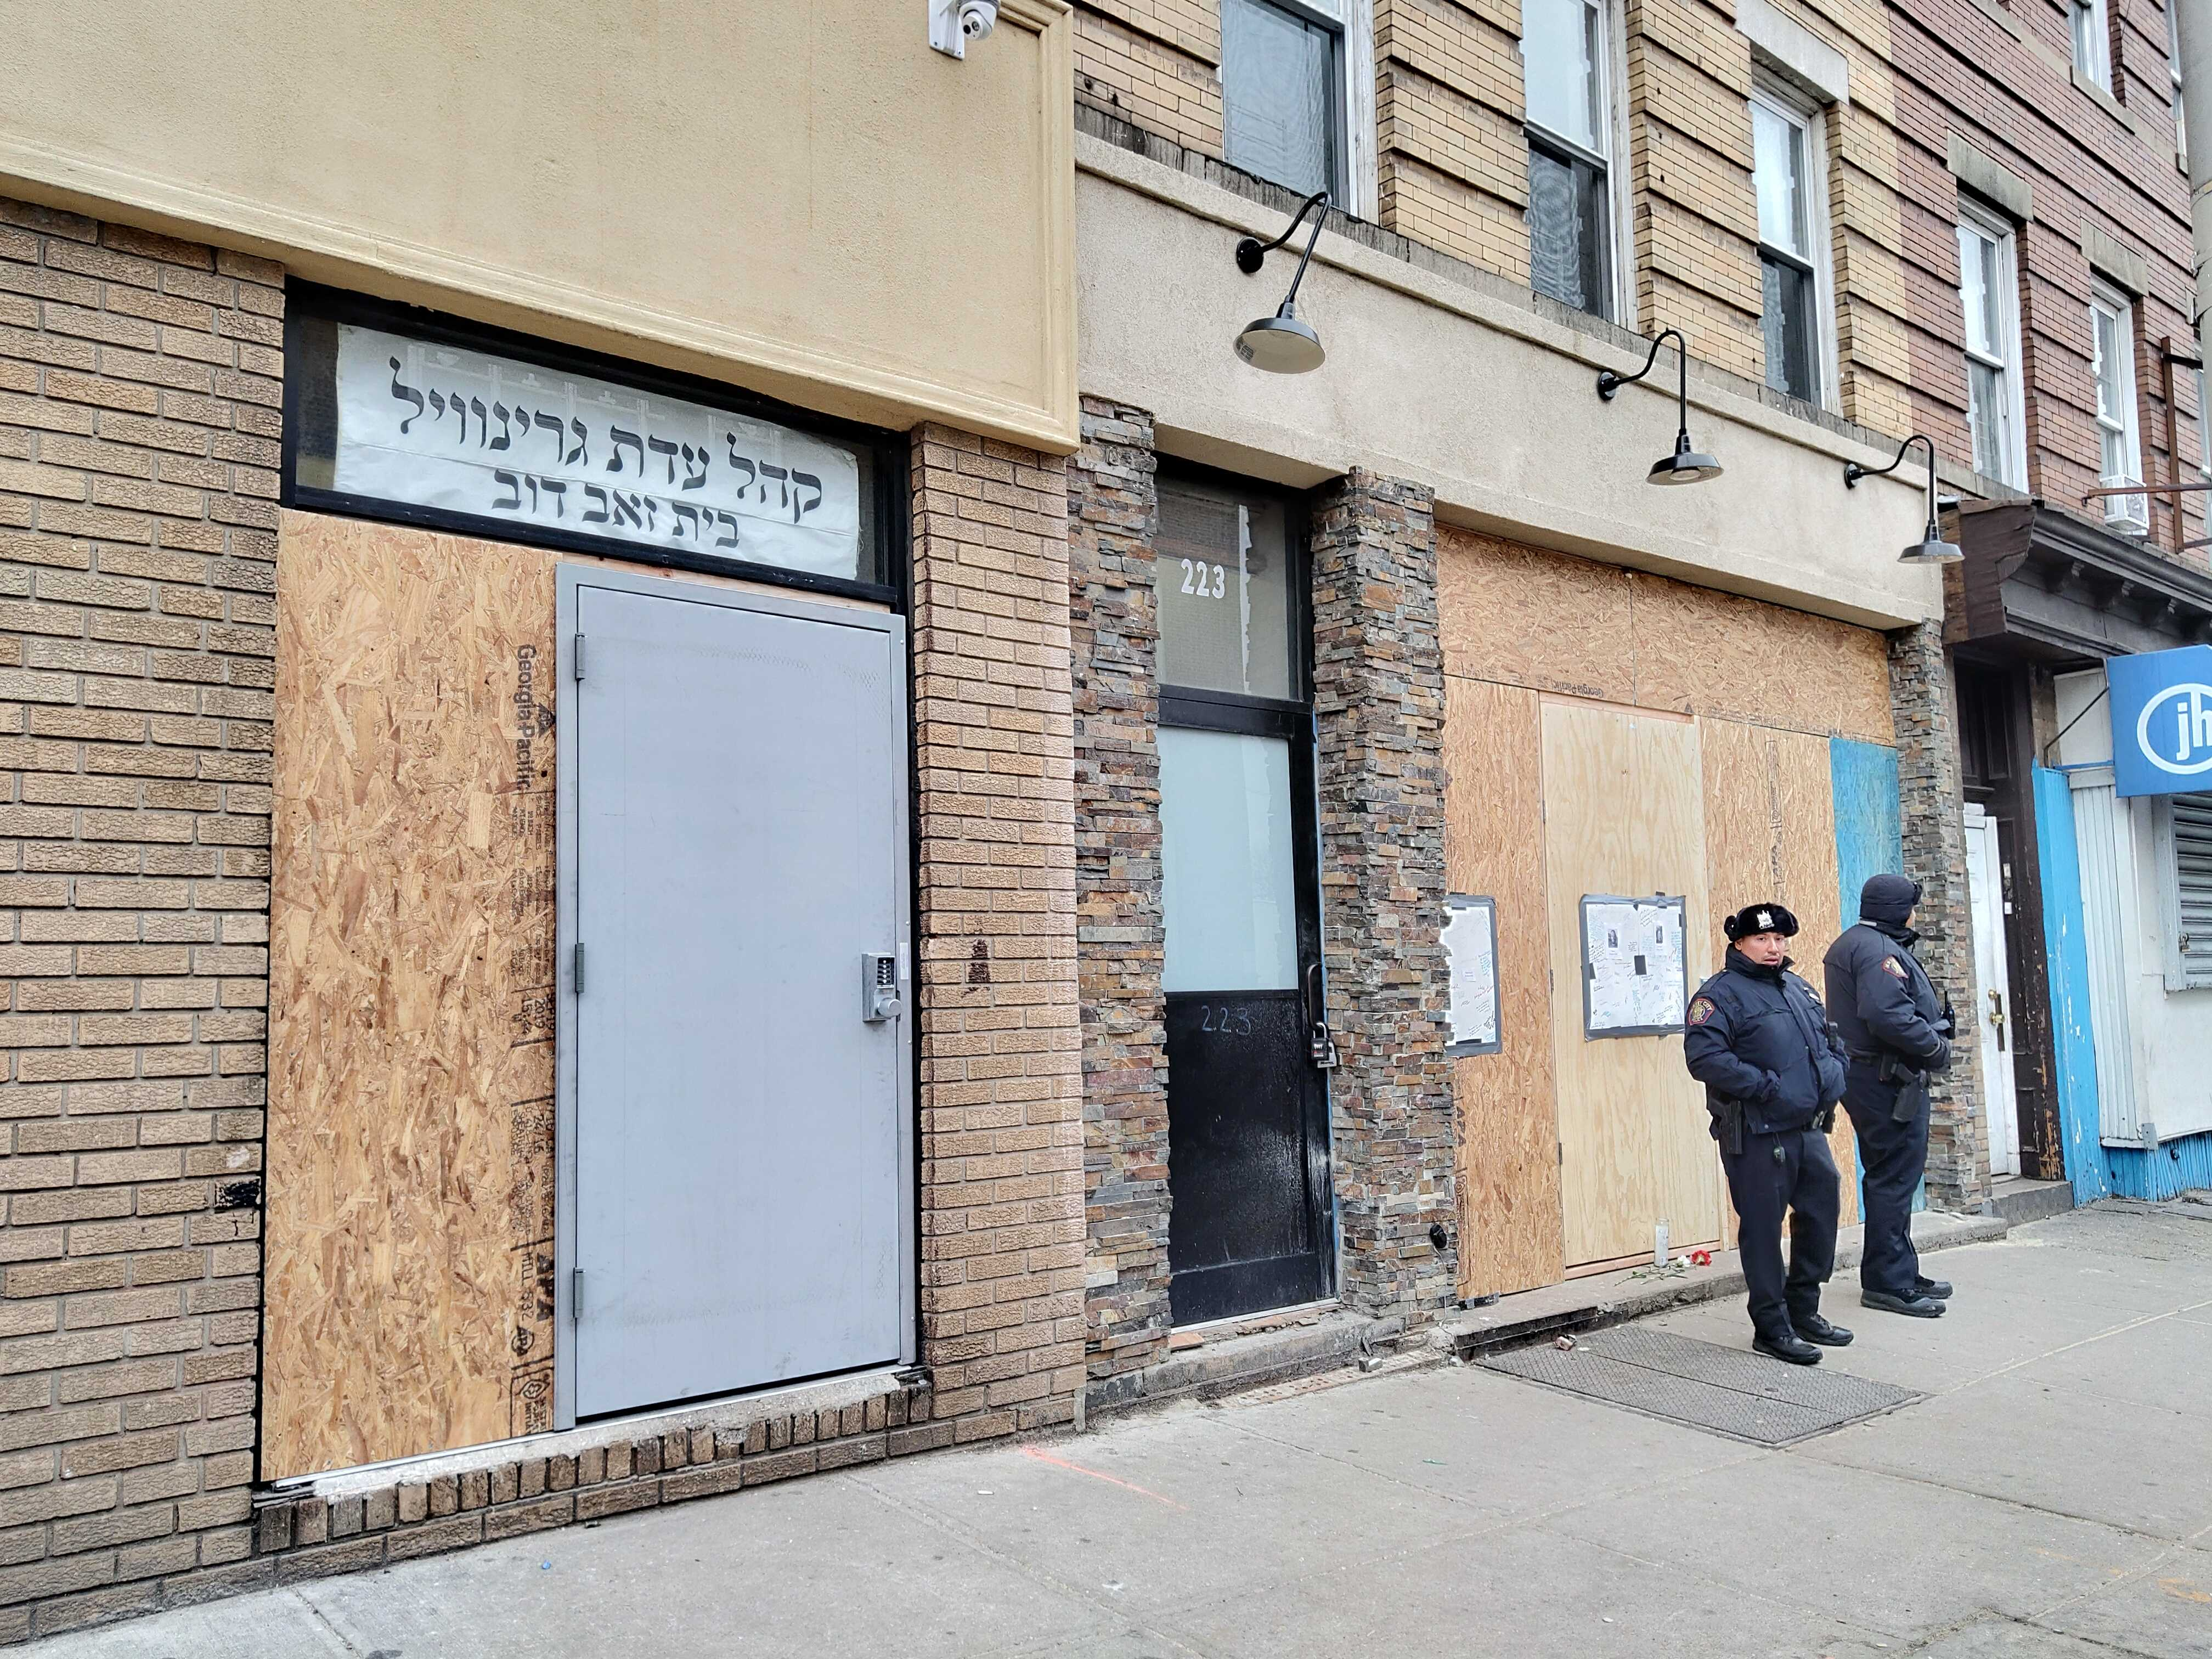 Shooters may have been targeting 50 children in yeshiva, Jersey City mayor suggests